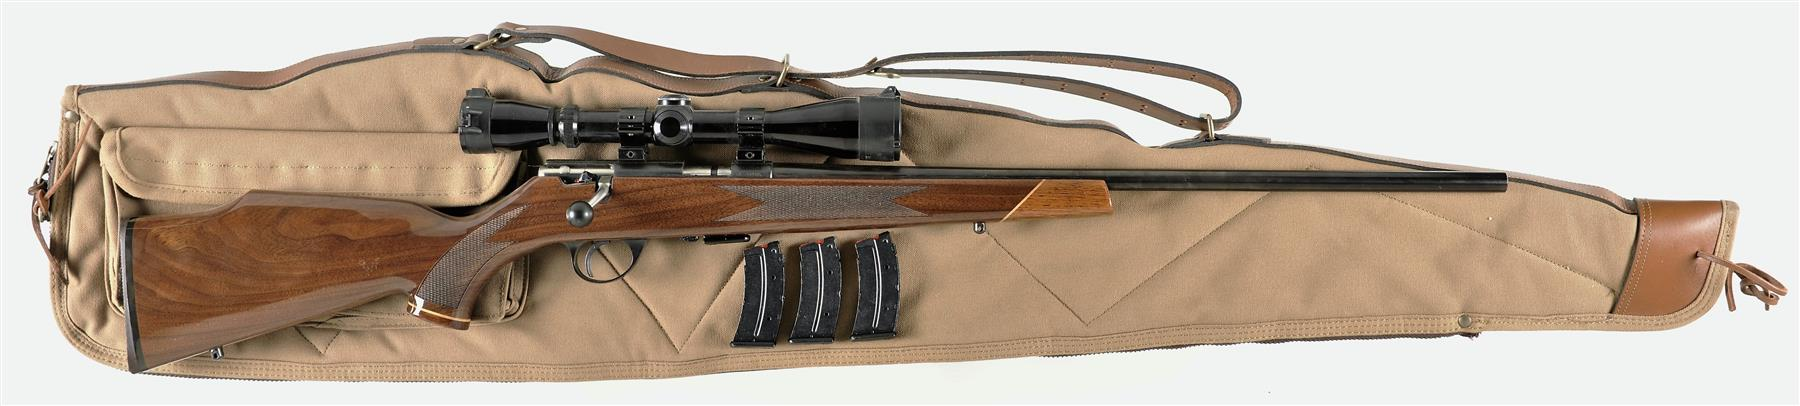 The last rimfire Weatherby was made by J.G. Anschutz and instead of being a semi-automatic it was based on the most accurate rimfire bolt action made. (Picture courtesy Rock Island Auction).